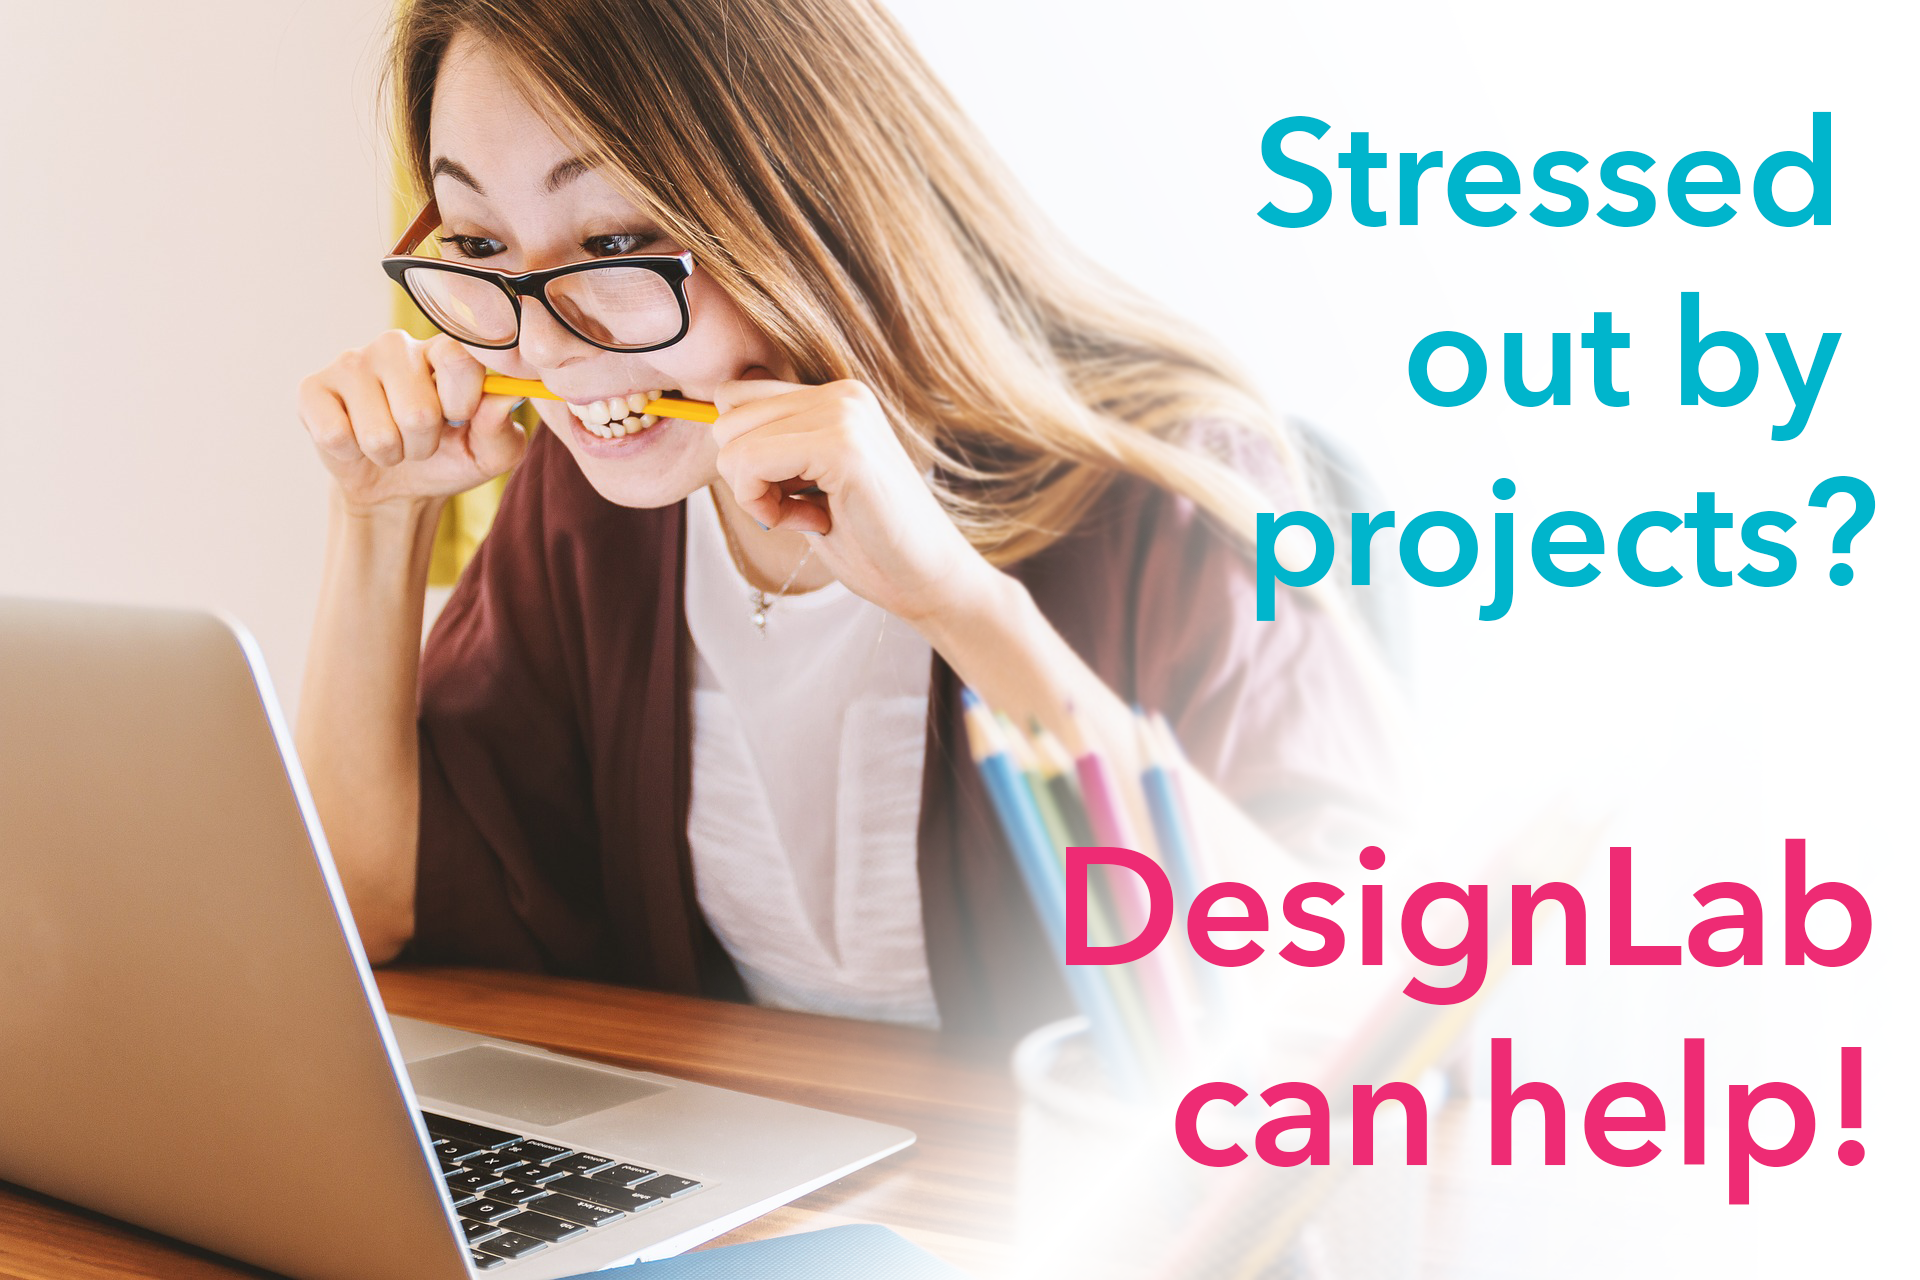 Stressed out by projects? DesignLab can help